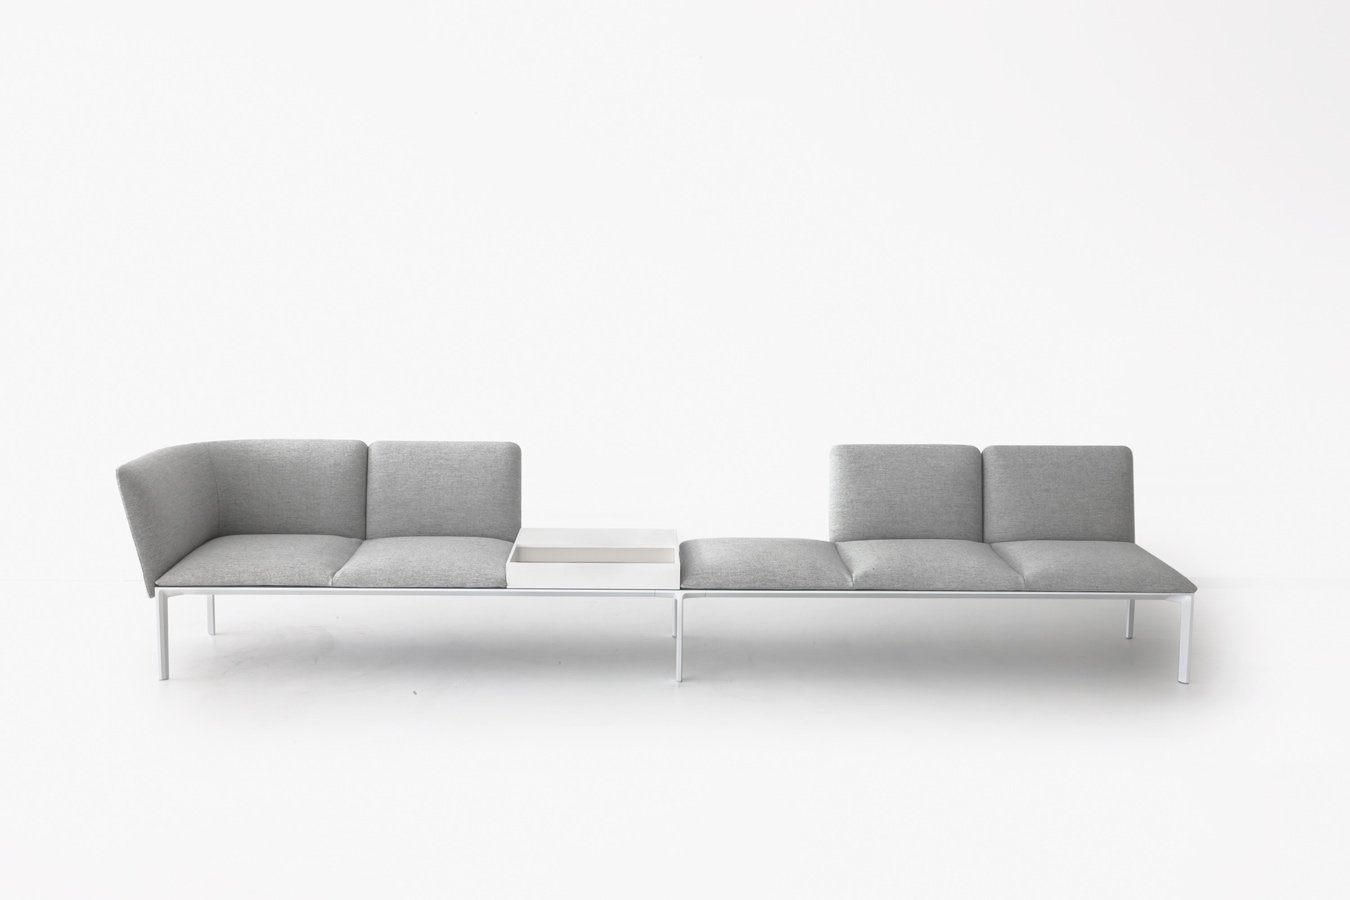 Add Modular Sofa from lapalma, designed by Francesco Rota